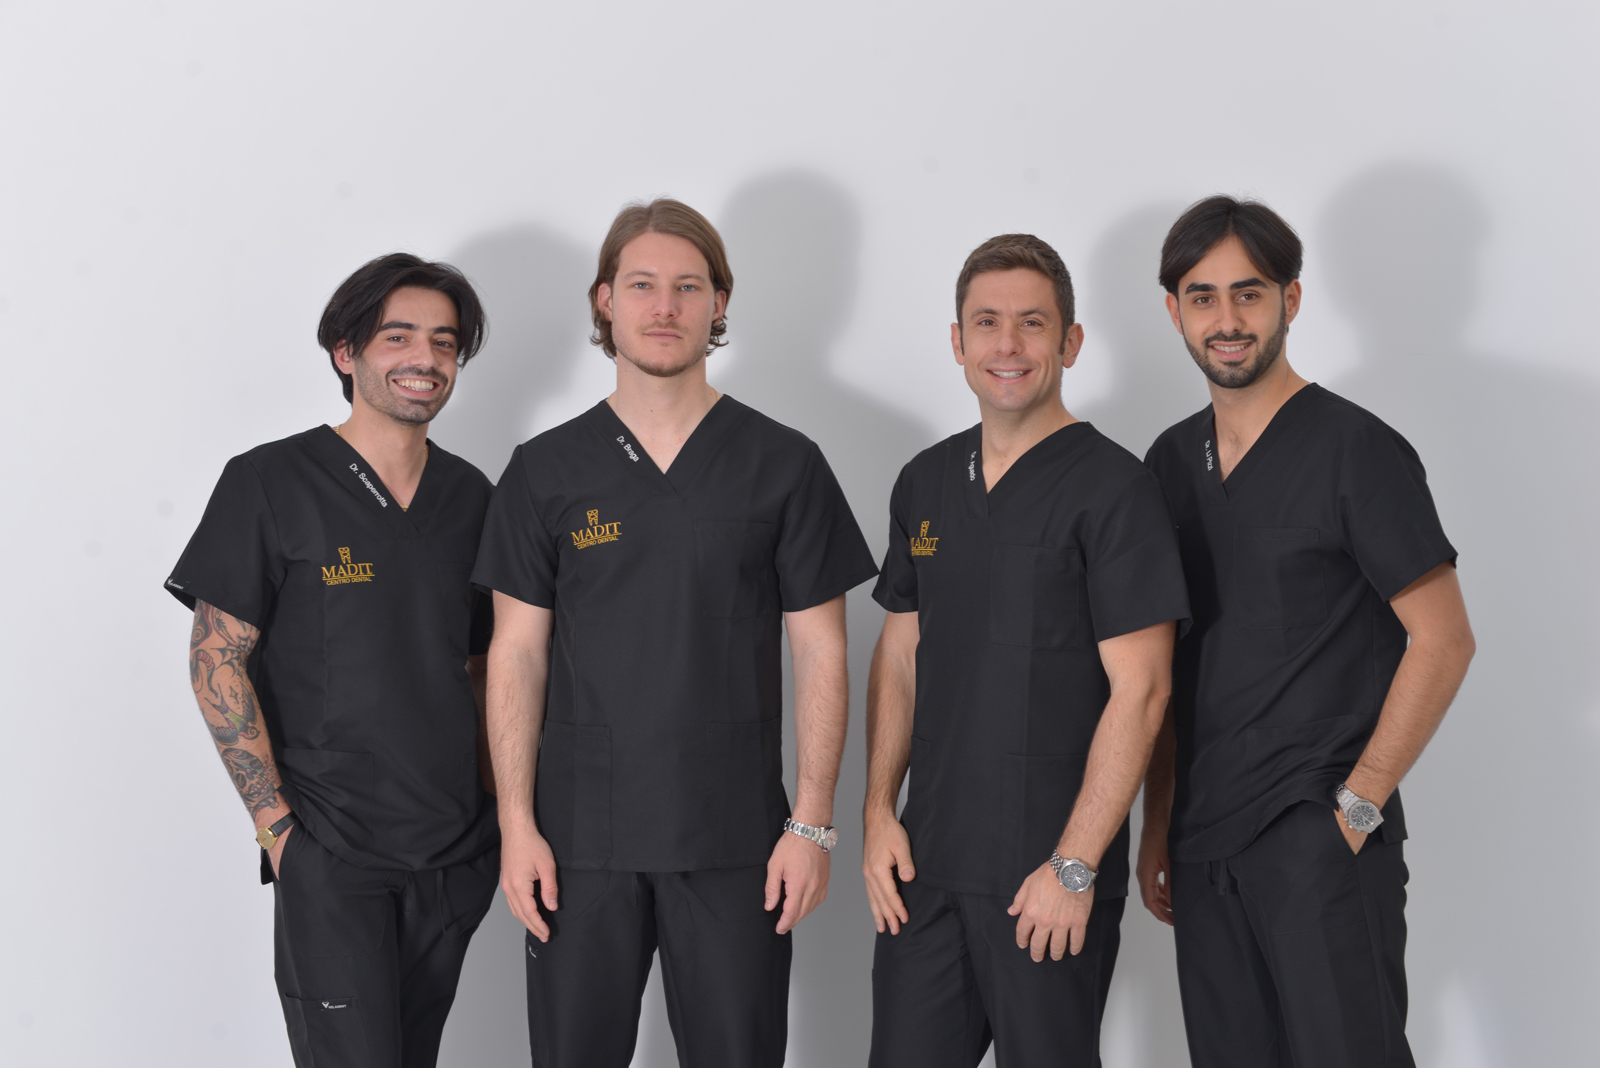 clinica-dental-madit-equipo